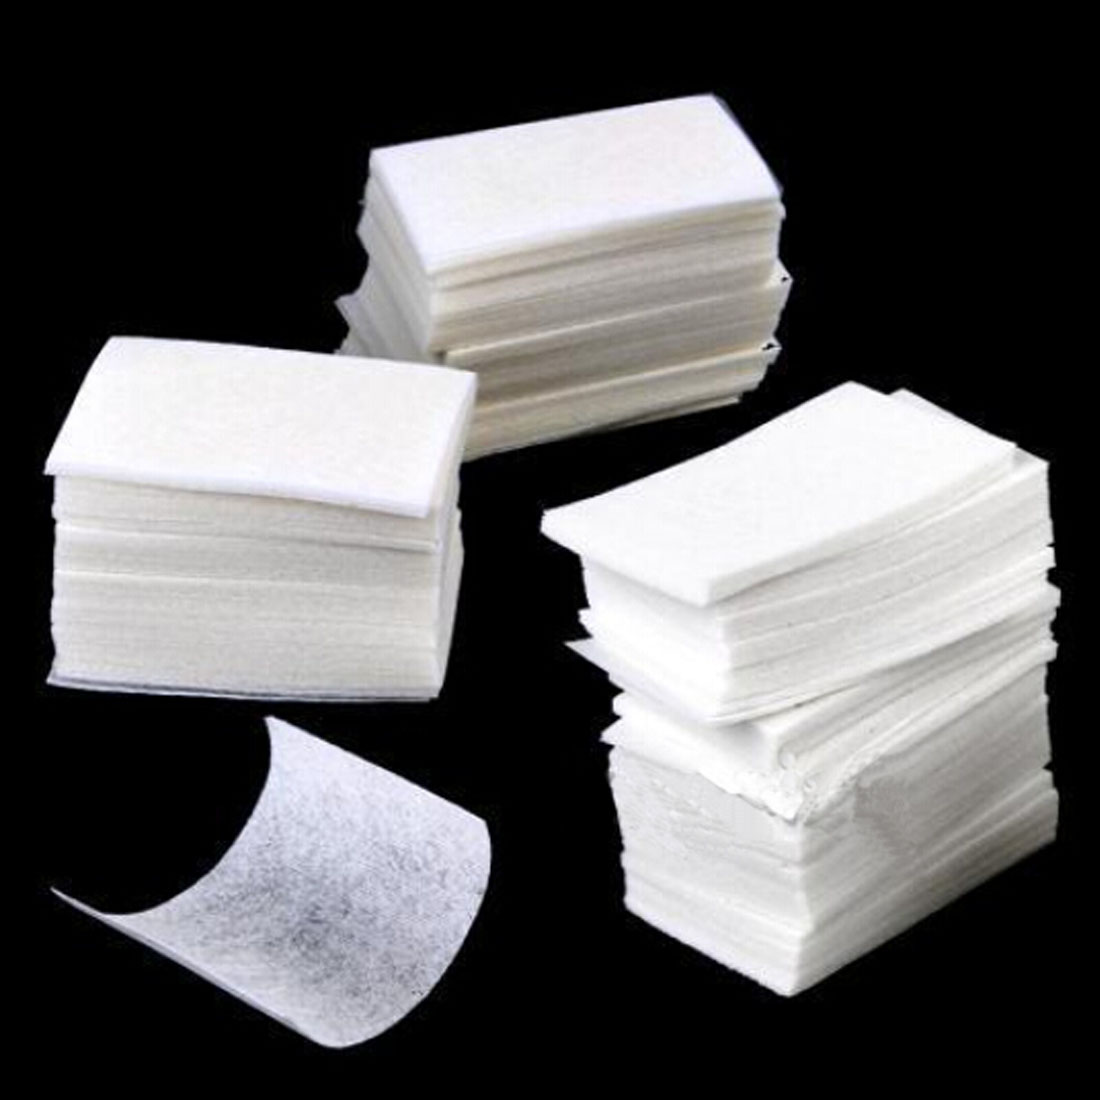 New 400pcs/set Nail Art Wipe Manicure Polish Gel Nail Wipes  Cotton High Quality Lint Cotton Pads Paper Acrylic Gel Tips